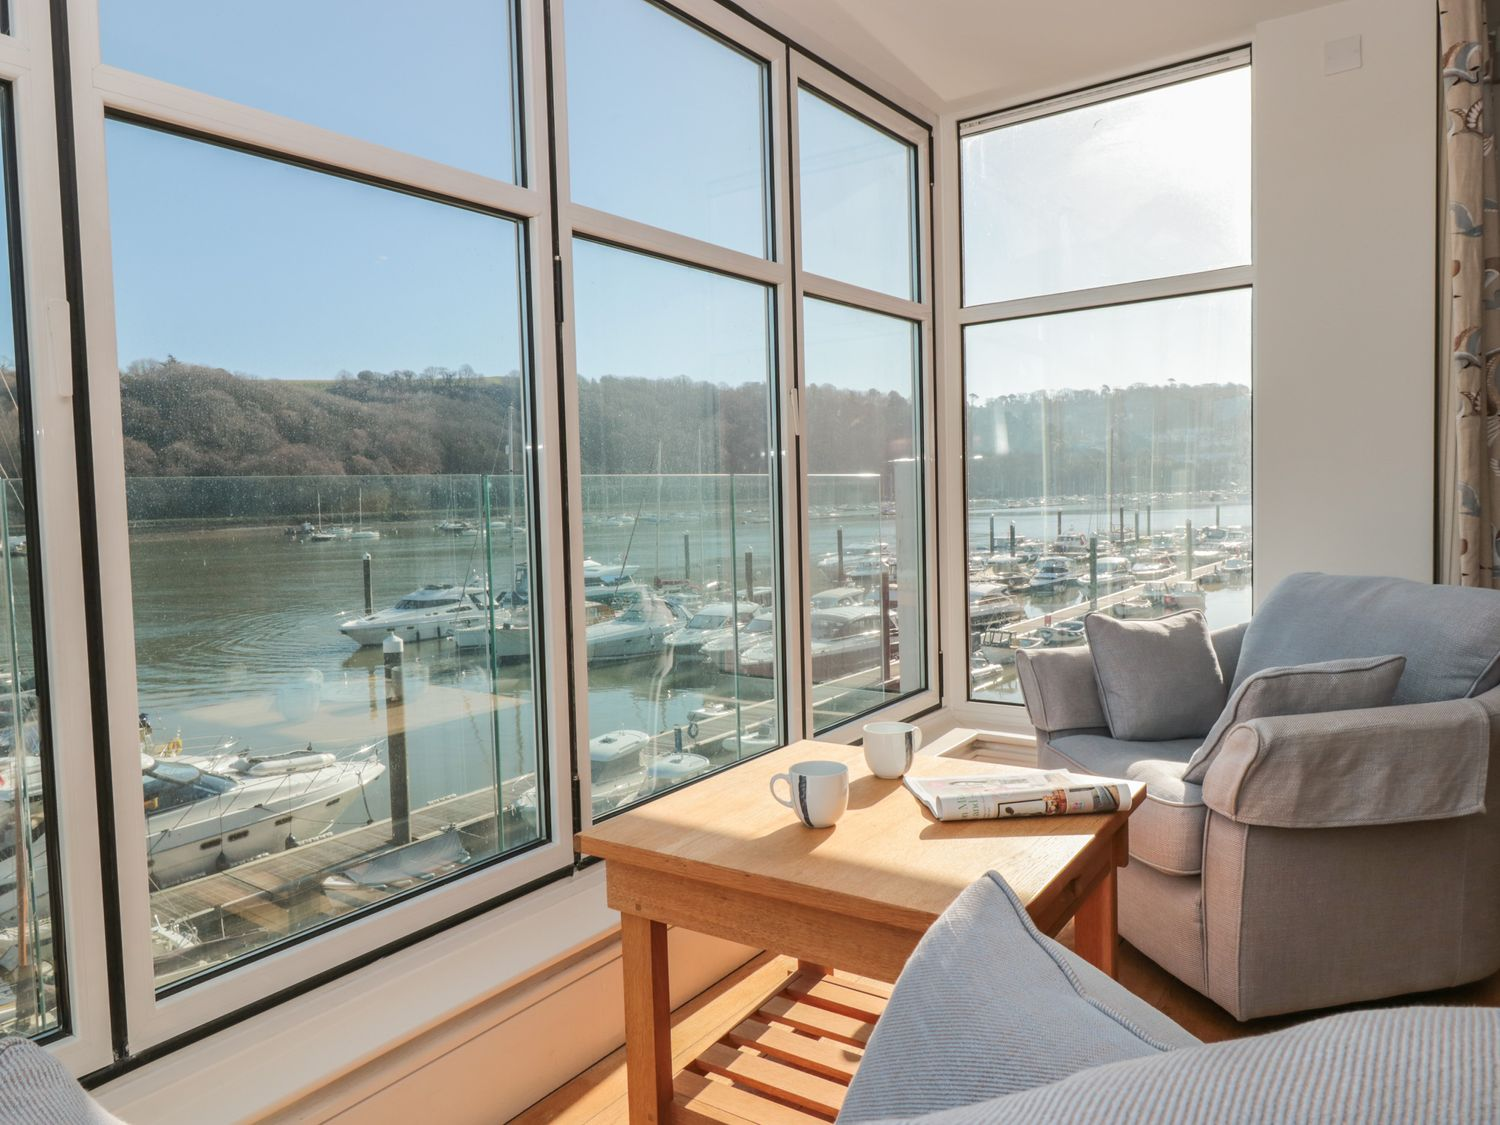 33 Dart Marina - Devon - 1065857 - photo 1